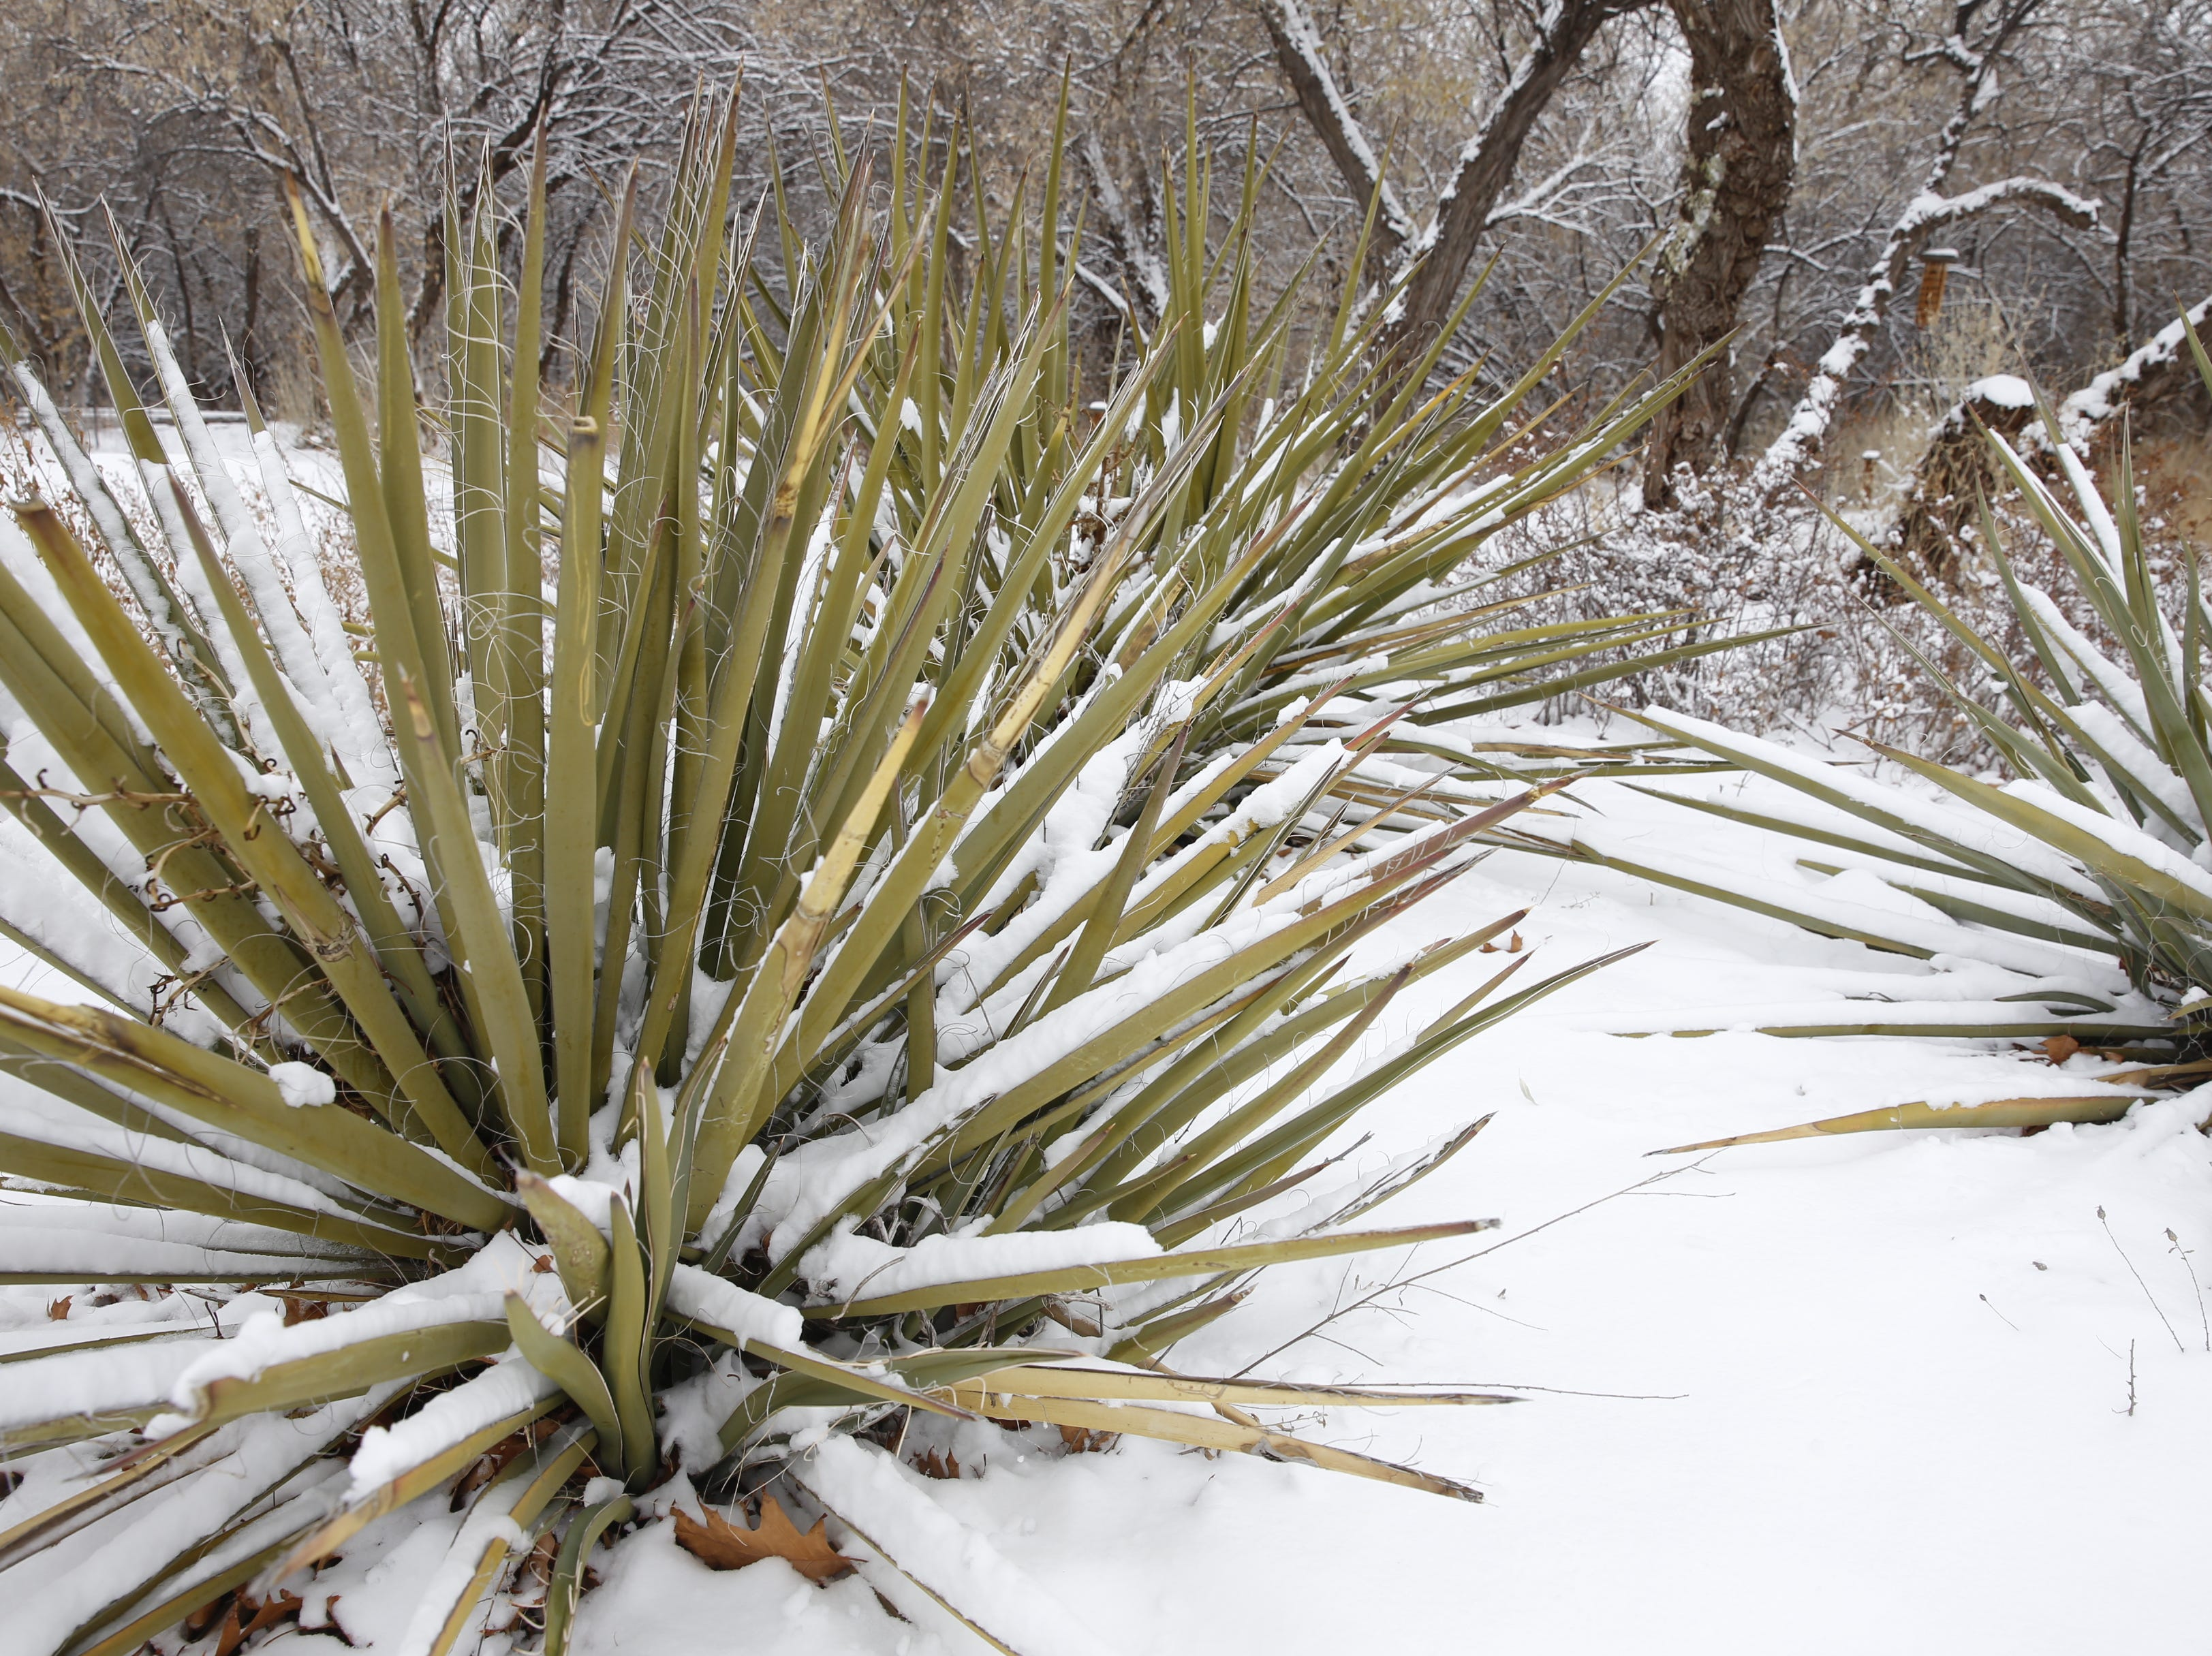 Snow covers yucca plants near the Riverside Nature Center in Farmington on Friday.